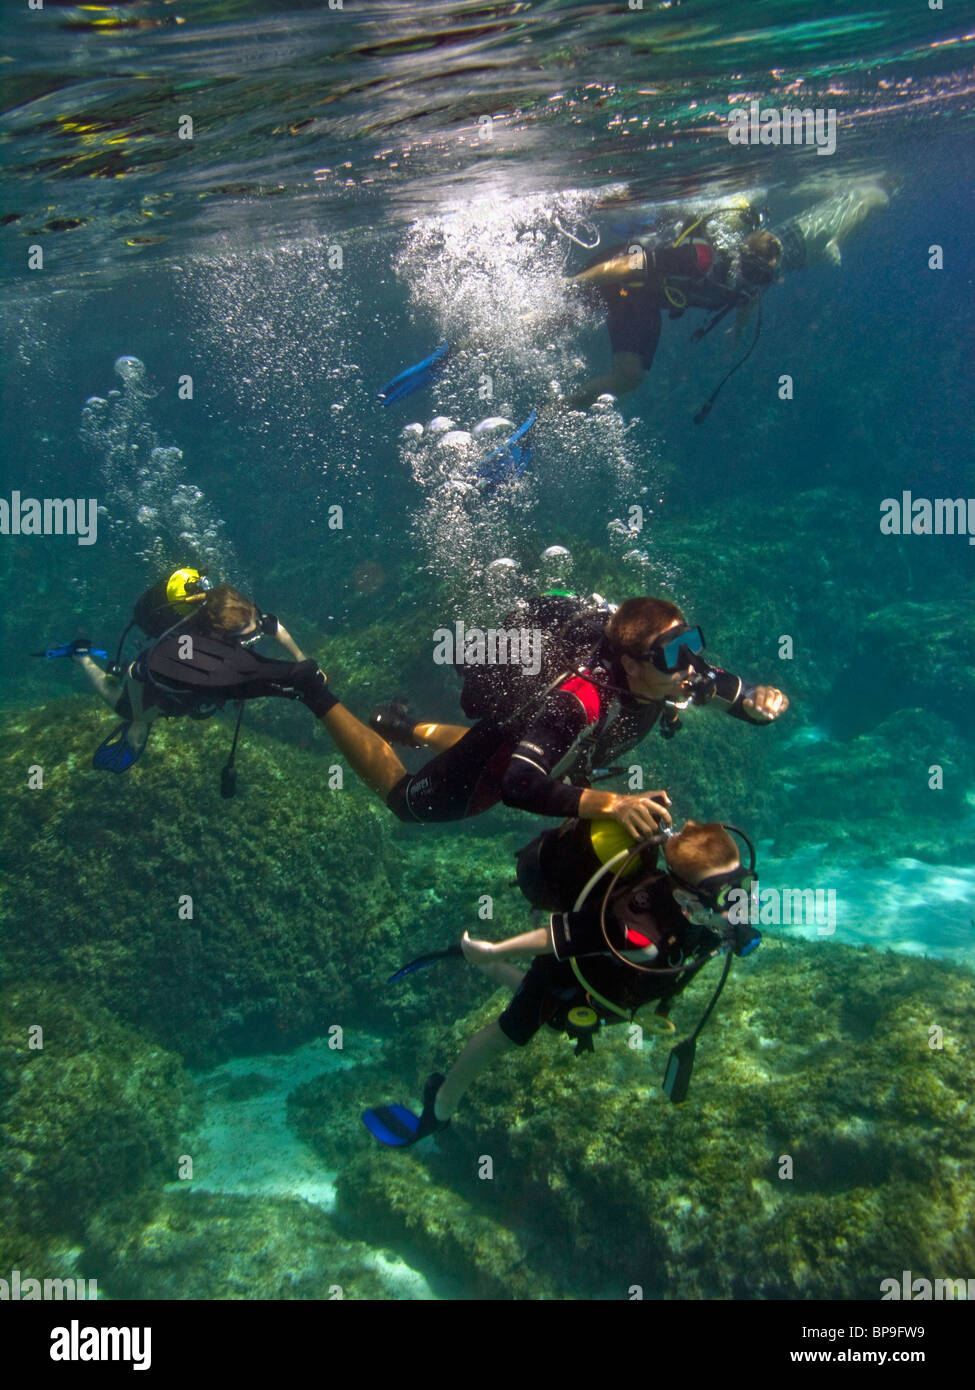 A scuba diving instructor is helping a child with his gear under water. The Blue Lagoon near Cape Greco, Cyprus, - Stock Image